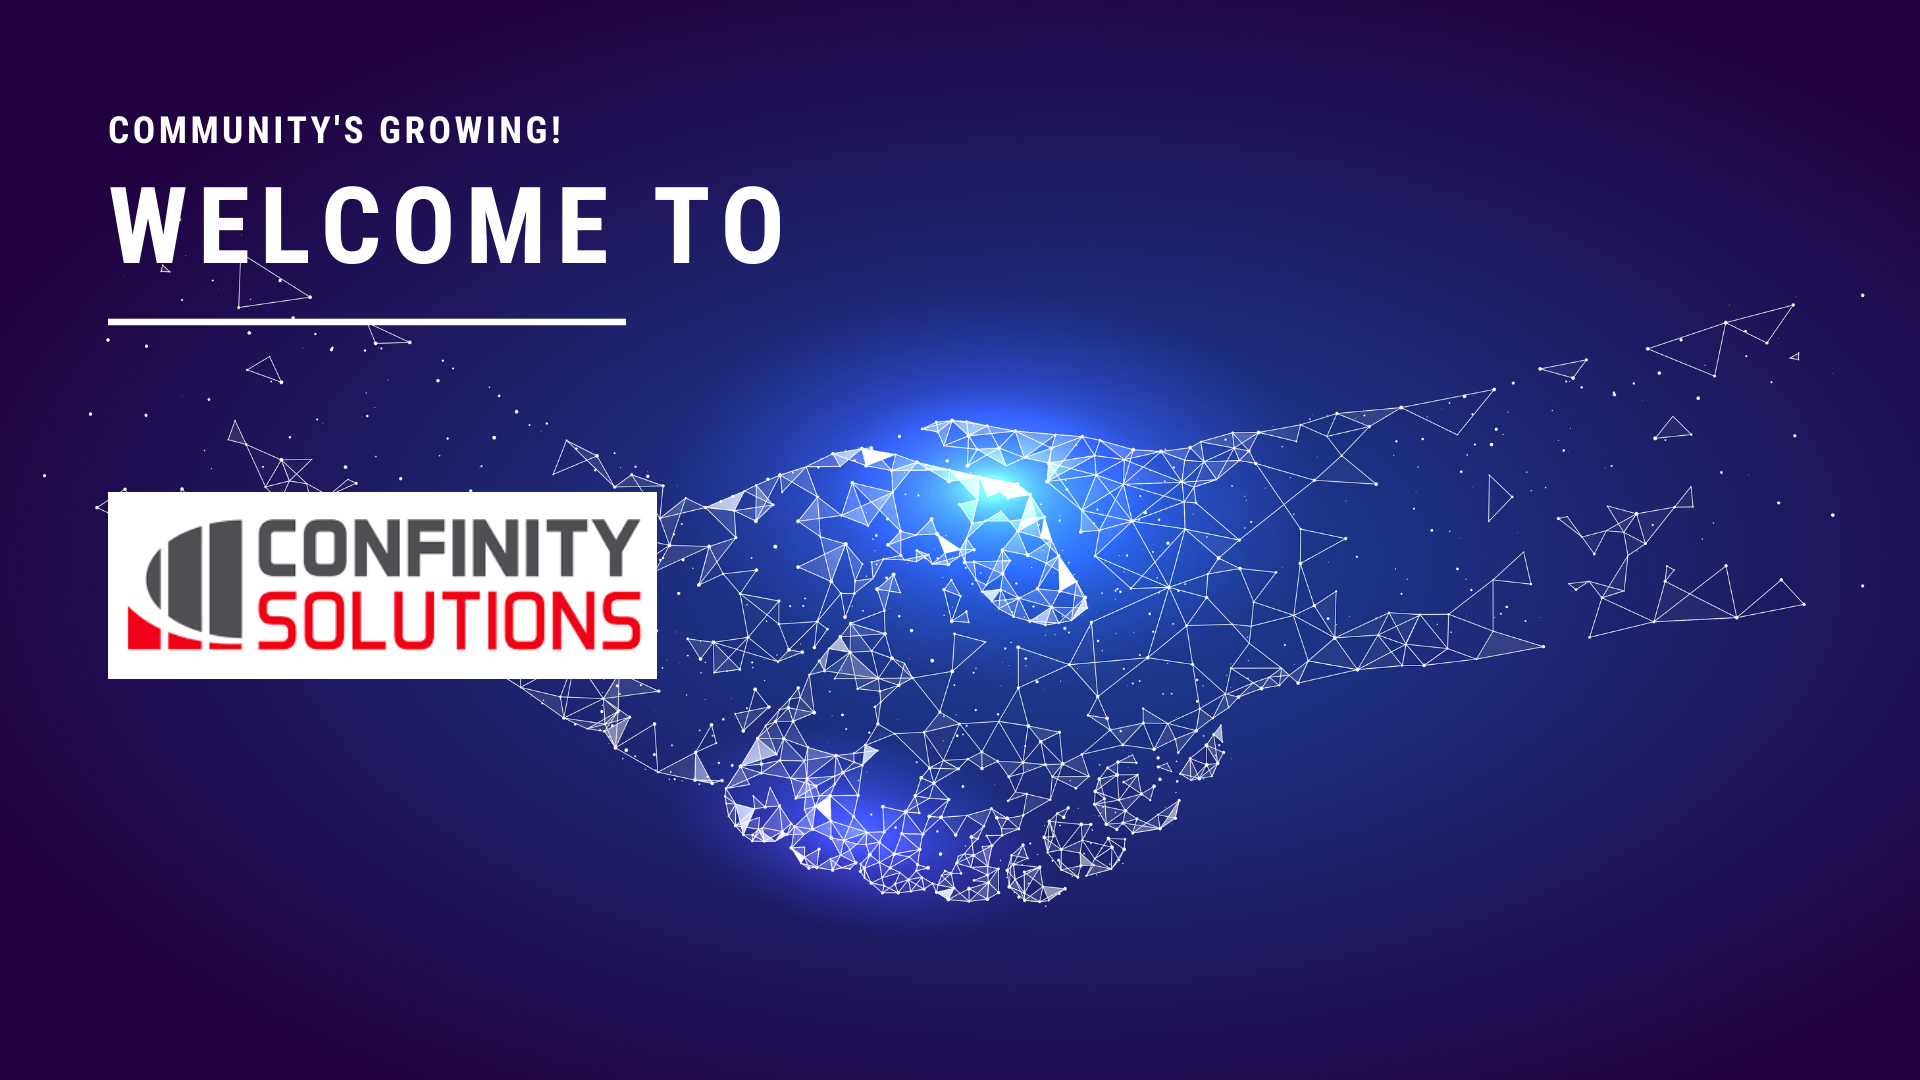 WELCOME TO CONFINITY SOLUTIONS